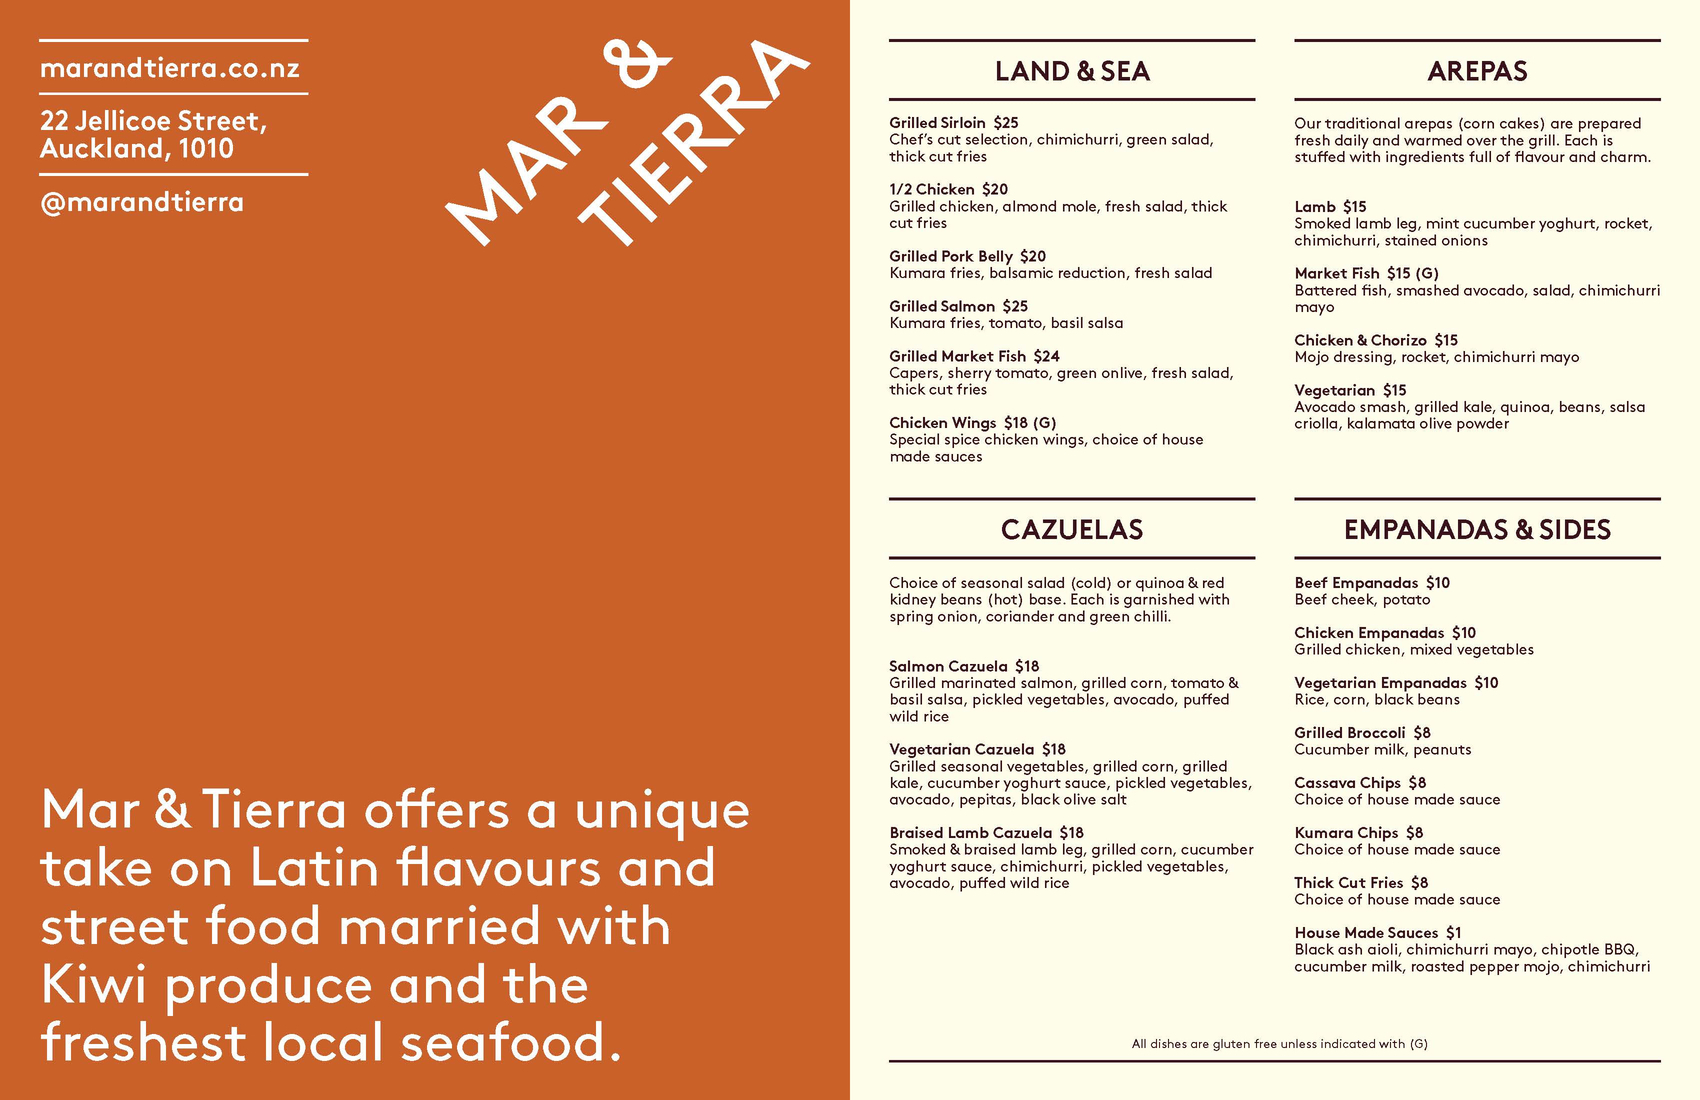 Mar and Tierra menu